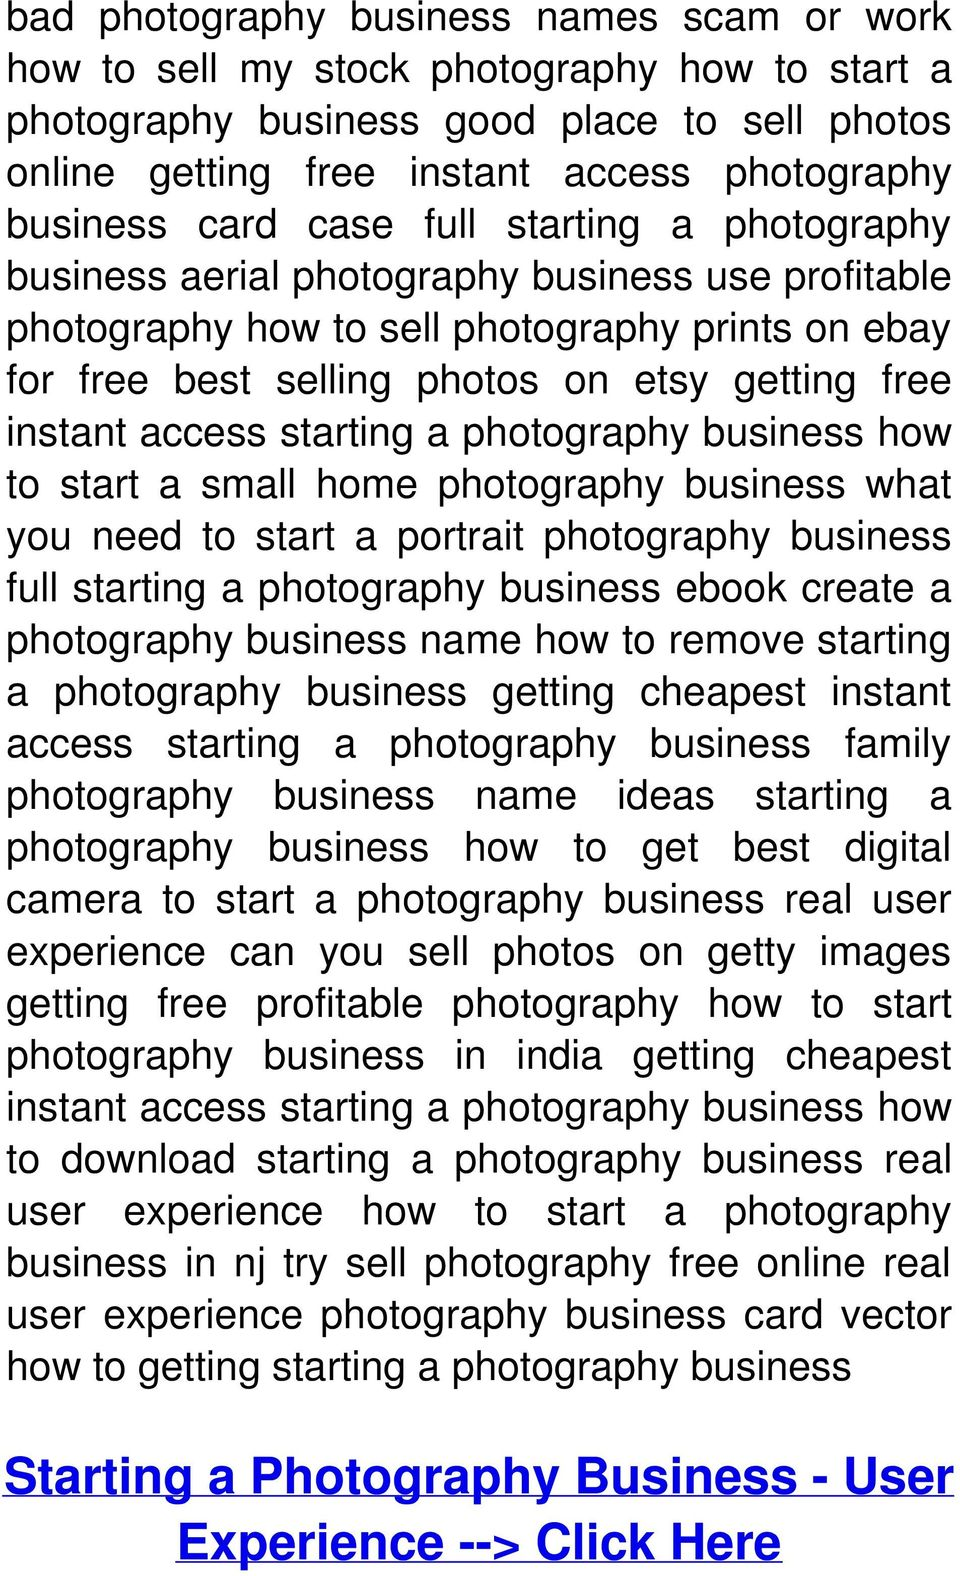 access starting a photography business how to start a small home photography business what you need to start a portrait photography business full starting a photography business ebook create a